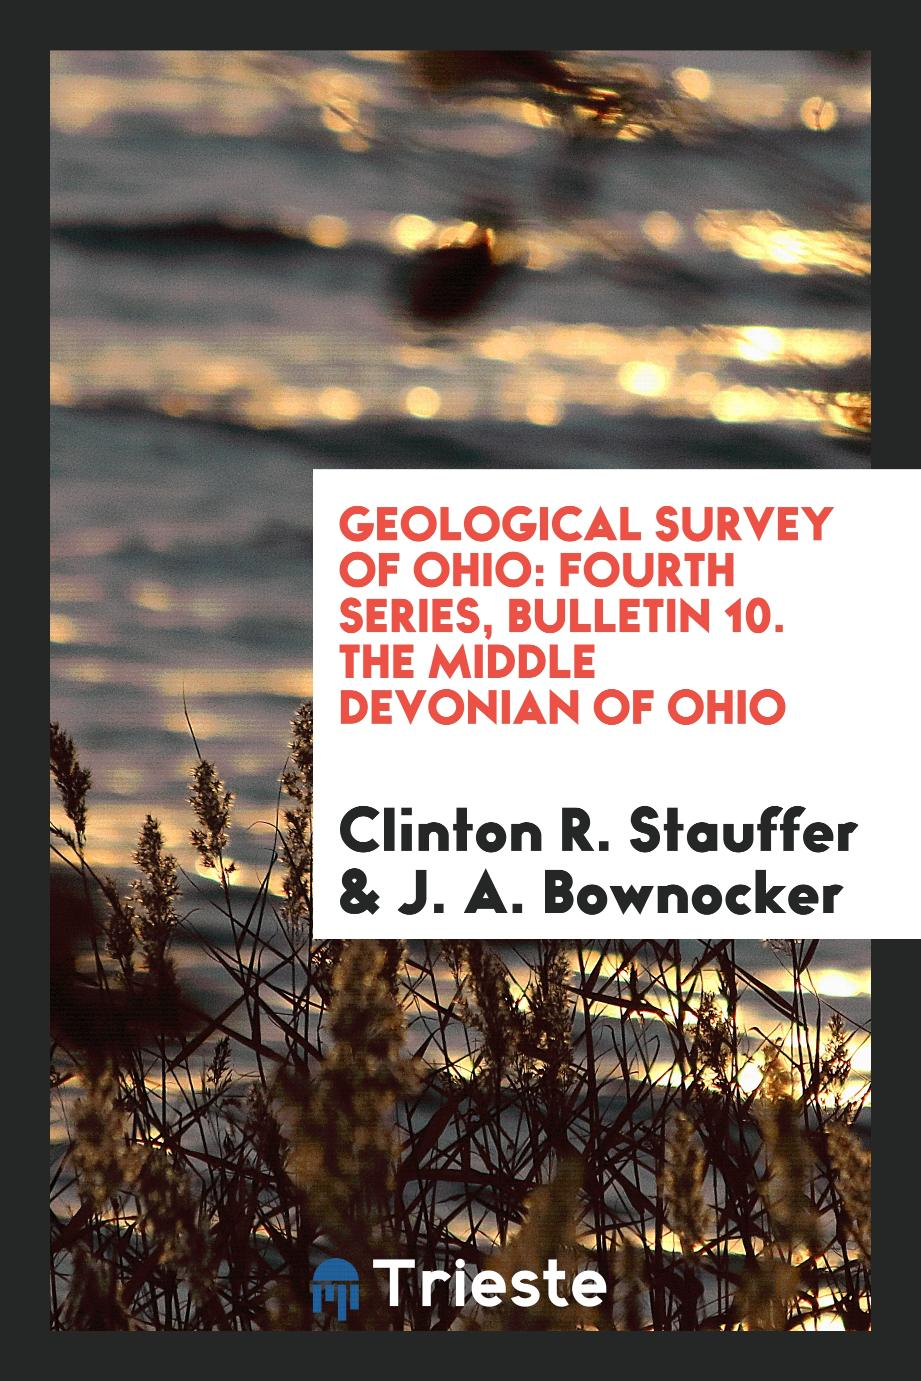 Geological Survey of Ohio: Fourth Series, Bulletin 10. The Middle Devonian of Ohio